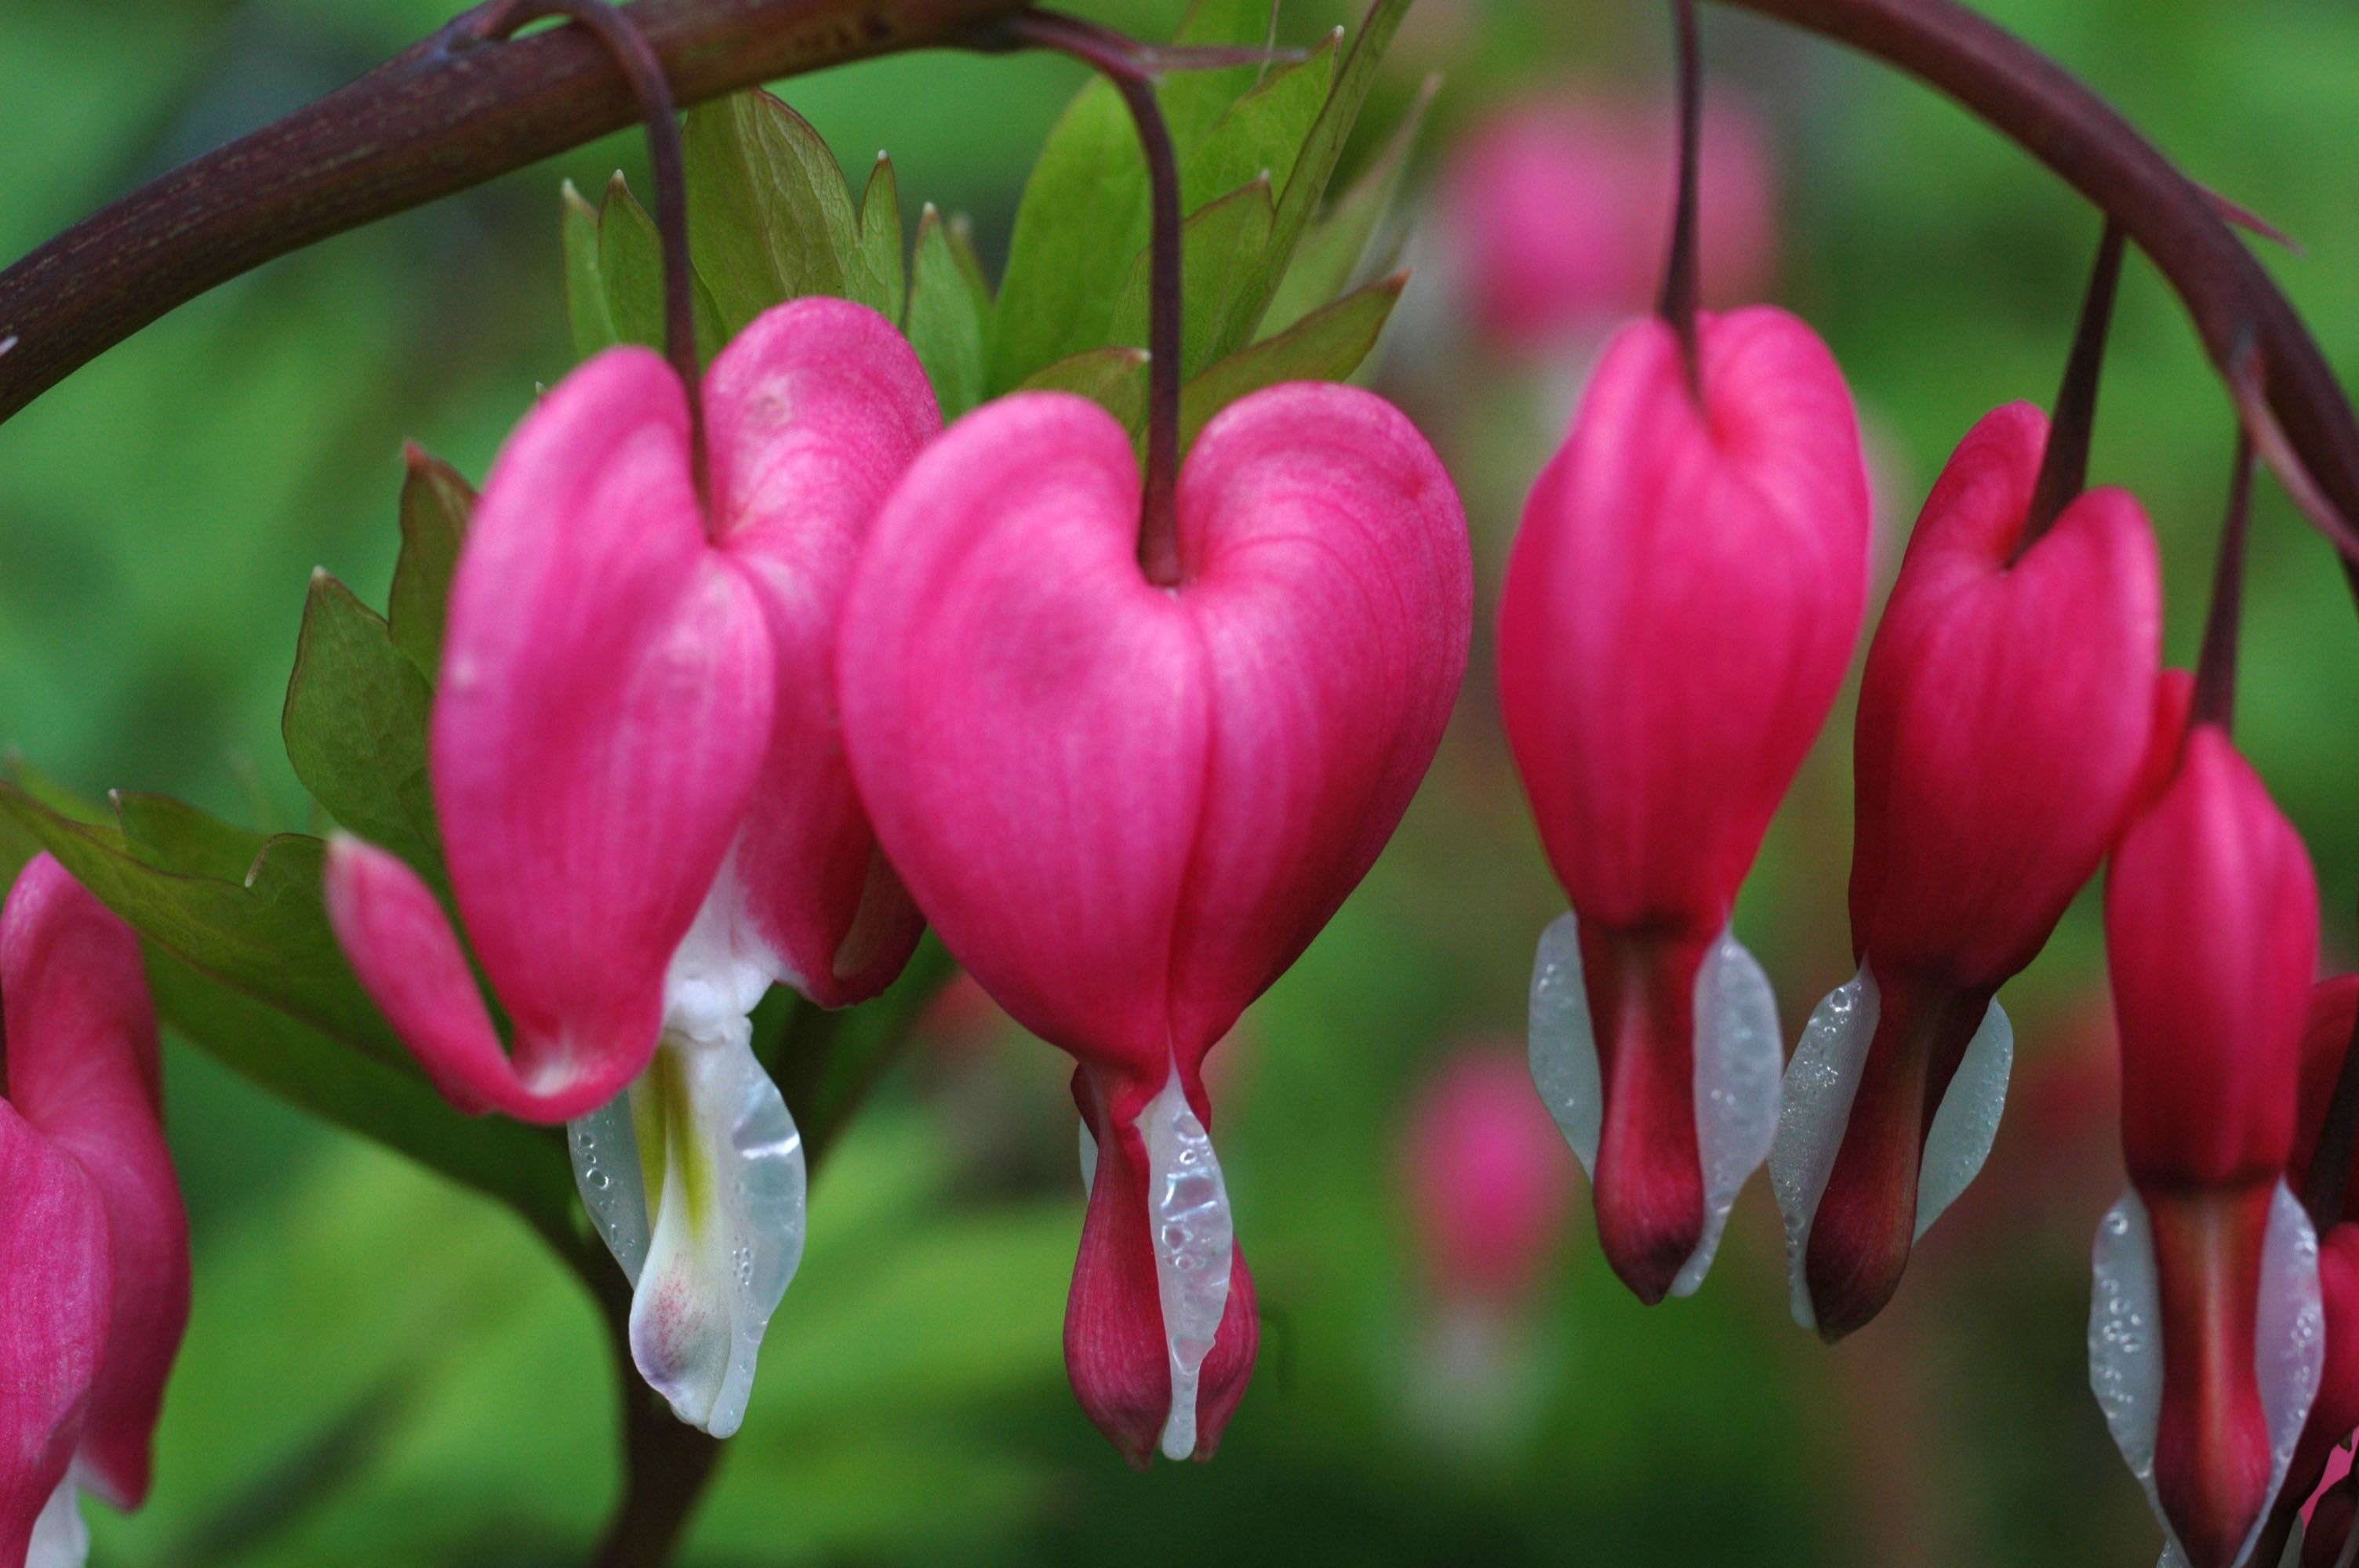 Bleeding Heart Flower Wallpaper Bleeding Heart Flower Wonderful Flowers Most Beautiful Flowers